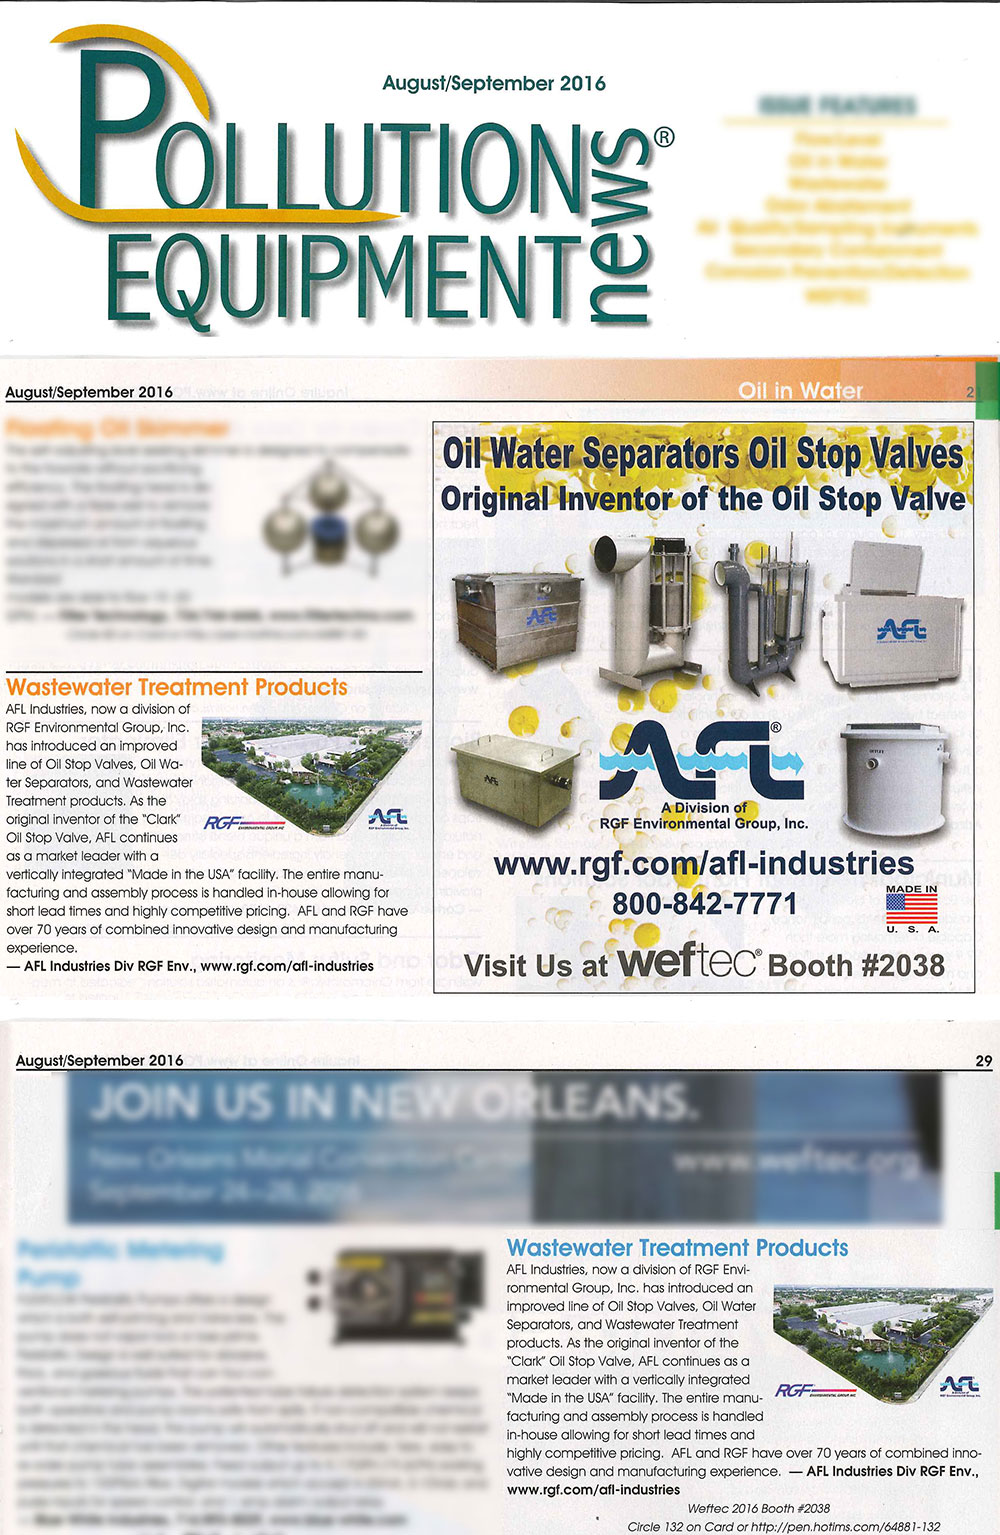 Article in pollution equipment news